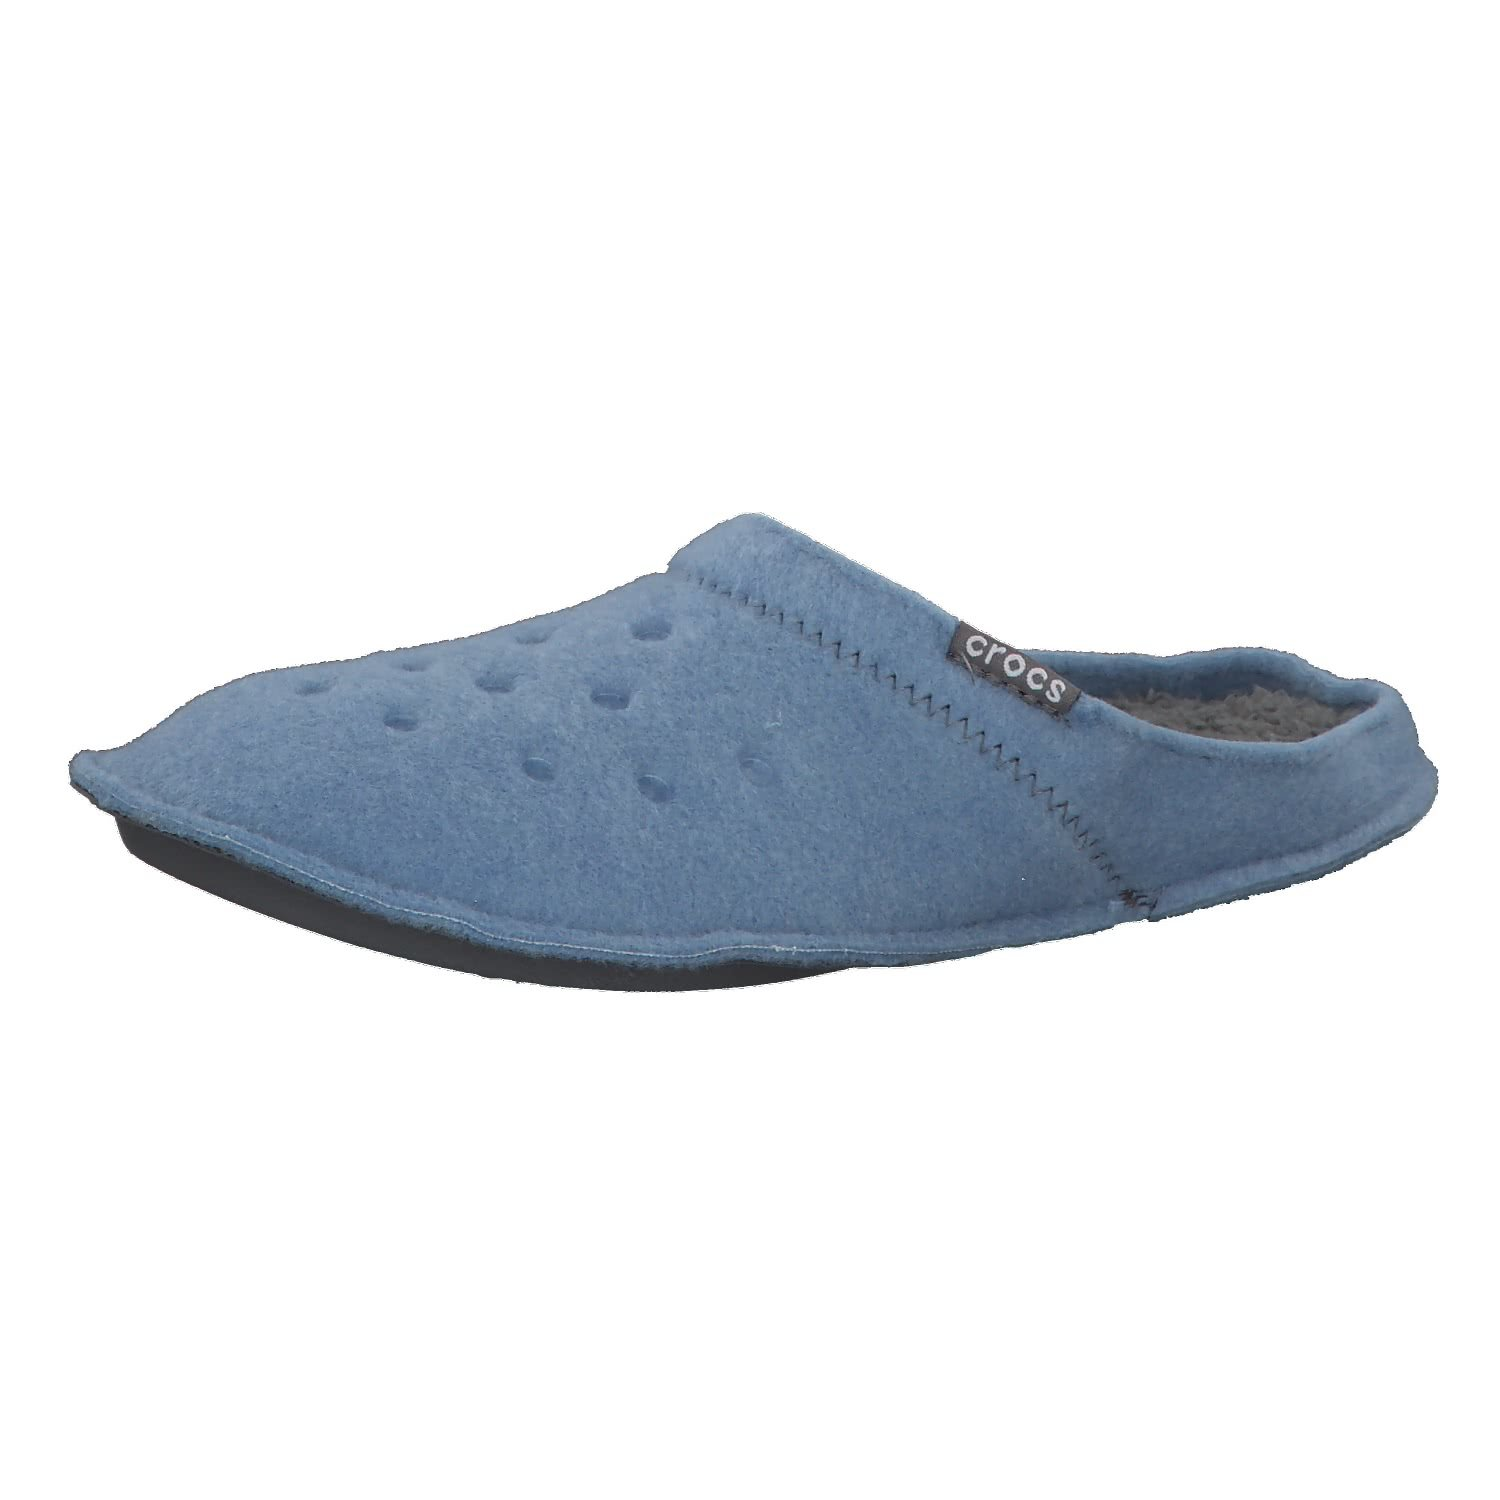 Crocs B07C6FJDPR Classicslipper, Crocs Chaussons Mixte Chambray Adulte Chambray Blue/Slate Grey d66dfcc - fast-weightloss-diet.space